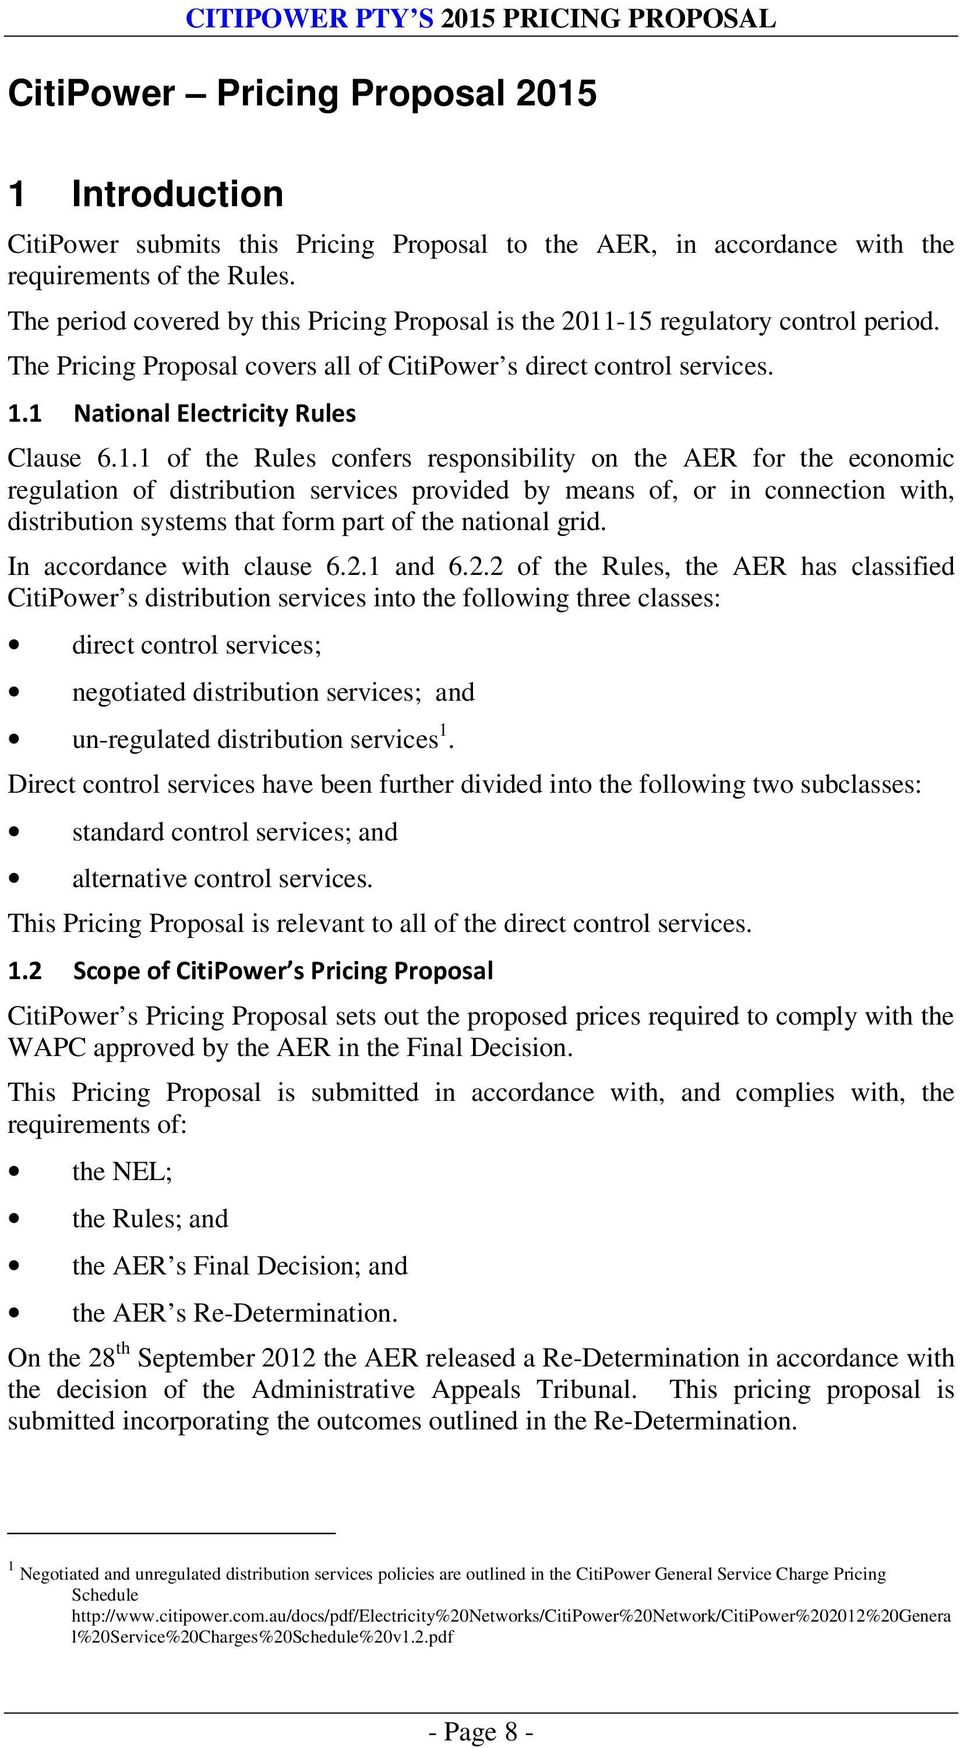 -15 regulatory control period. The Pricing Proposal covers all of CitiPower s direct control services. 1.1 National Electricity Rules Clause 6.1.1 of the Rules confers responsibility on the AER for